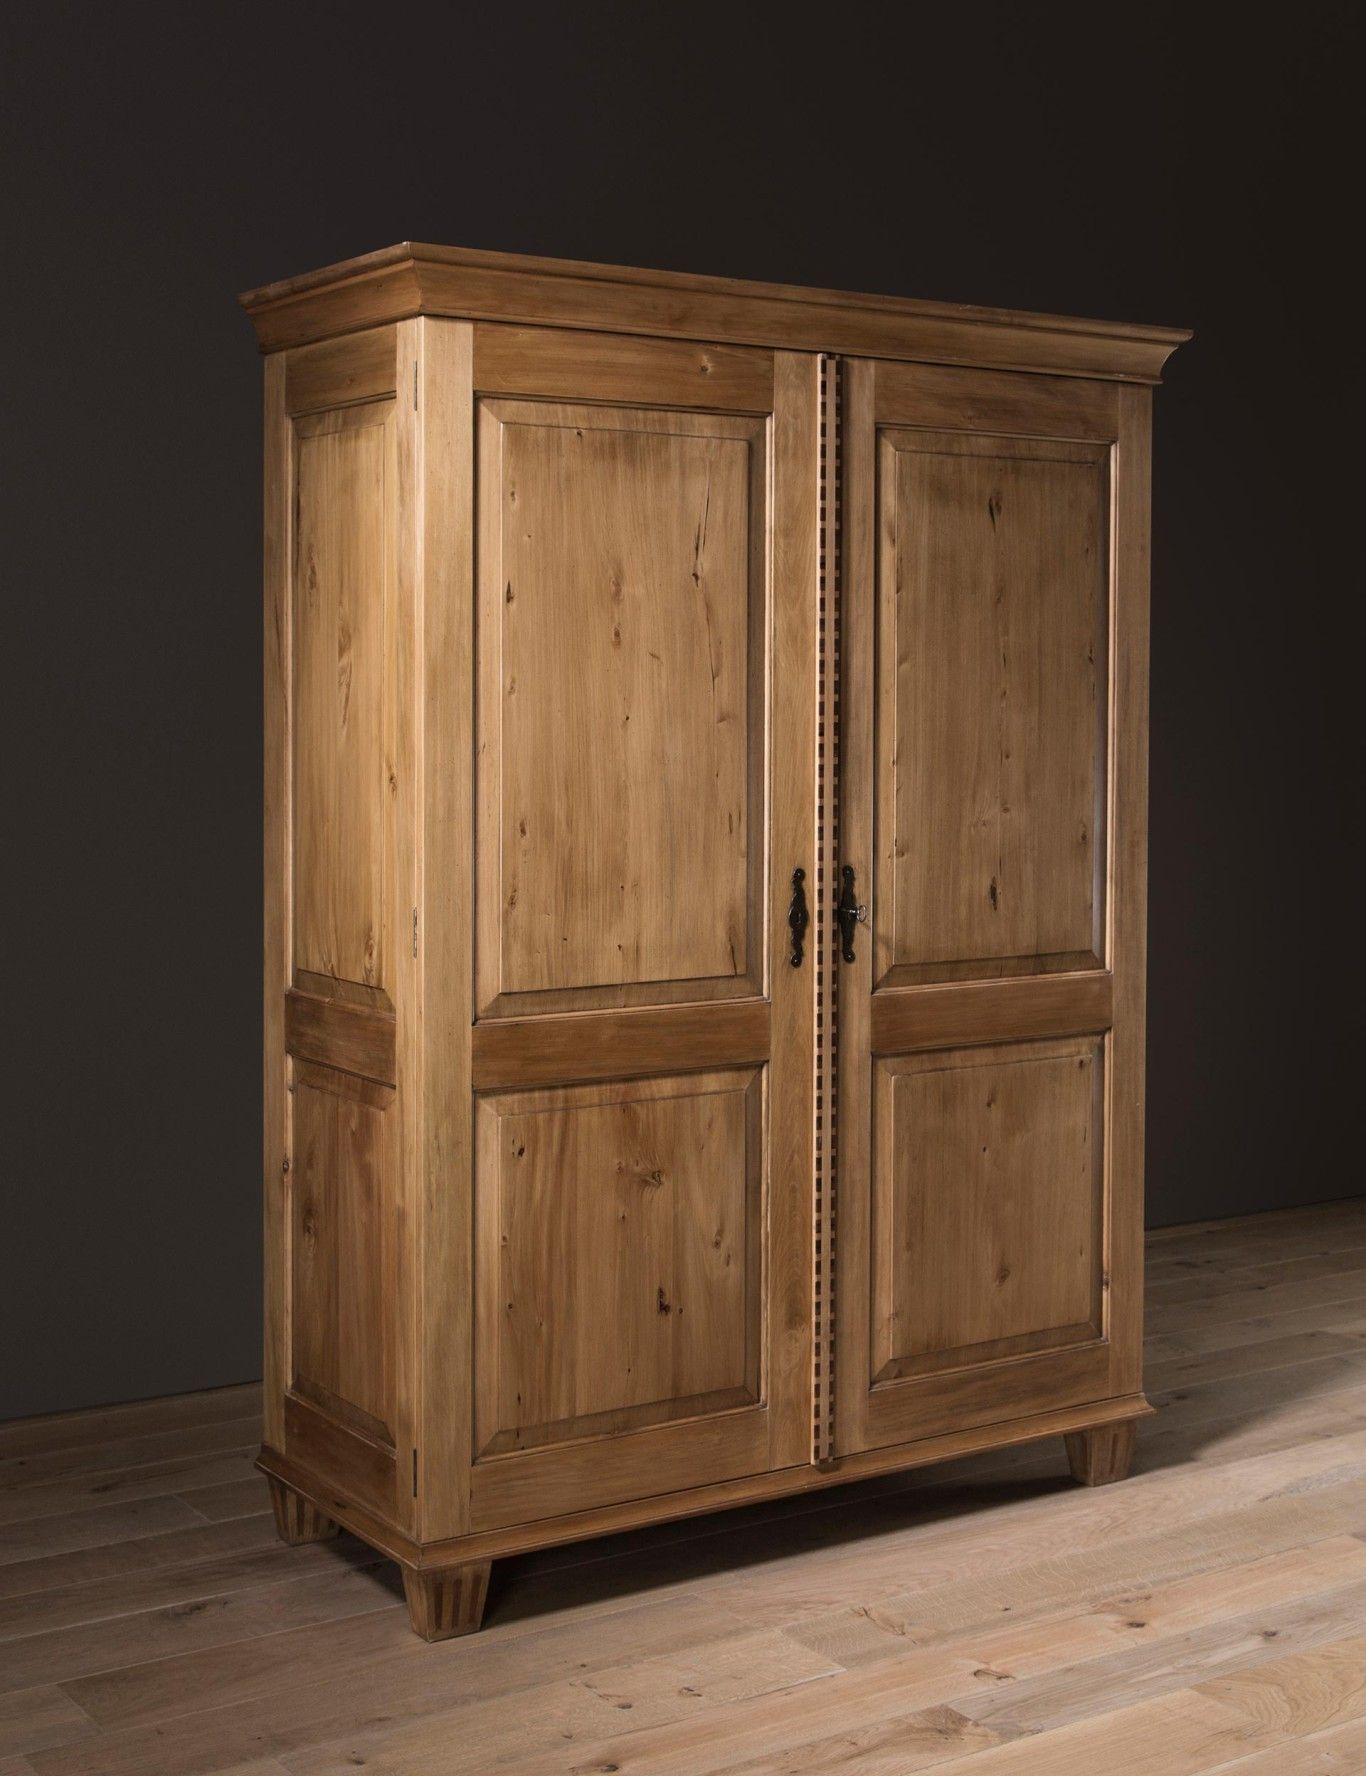 Pierre Cronje Wood Furniture Furniture Armoire Modern Bedroom Furniture